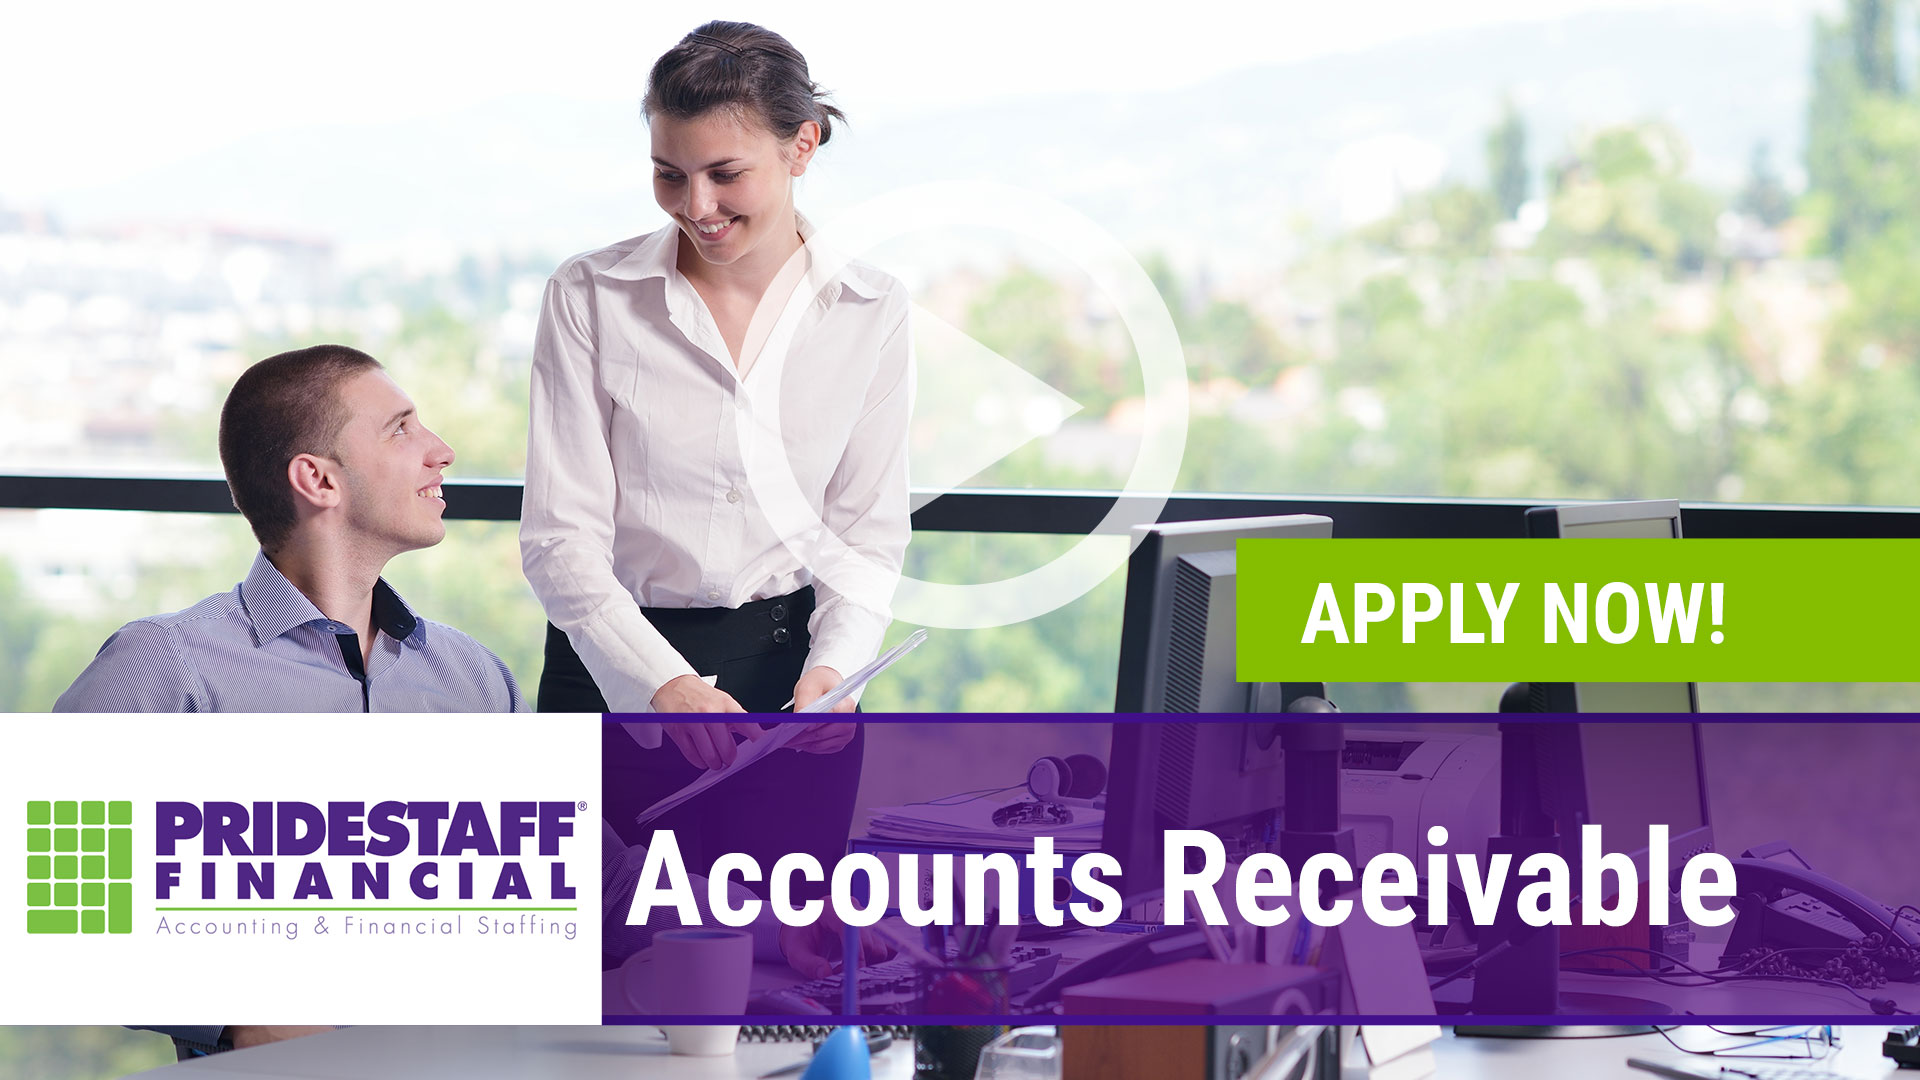 Watch our careers video for available job opening Accounts Receivable in Flower Mound, Texas